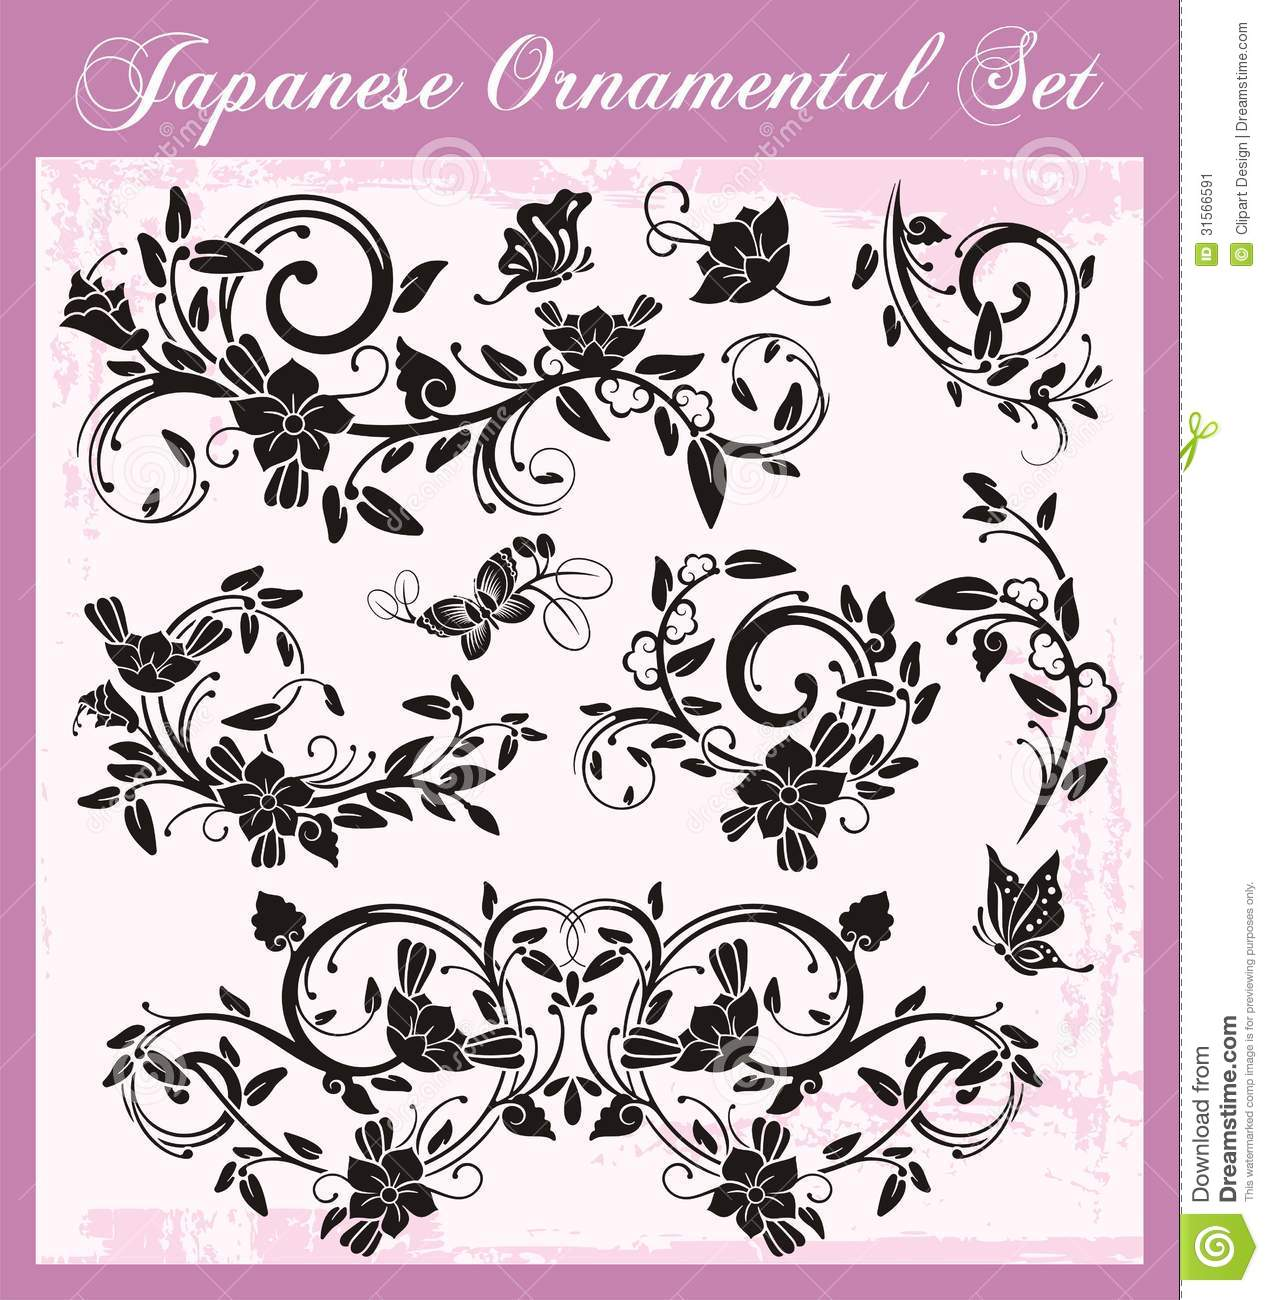 Japanese Traditional Ornaments Set Stock Image Image